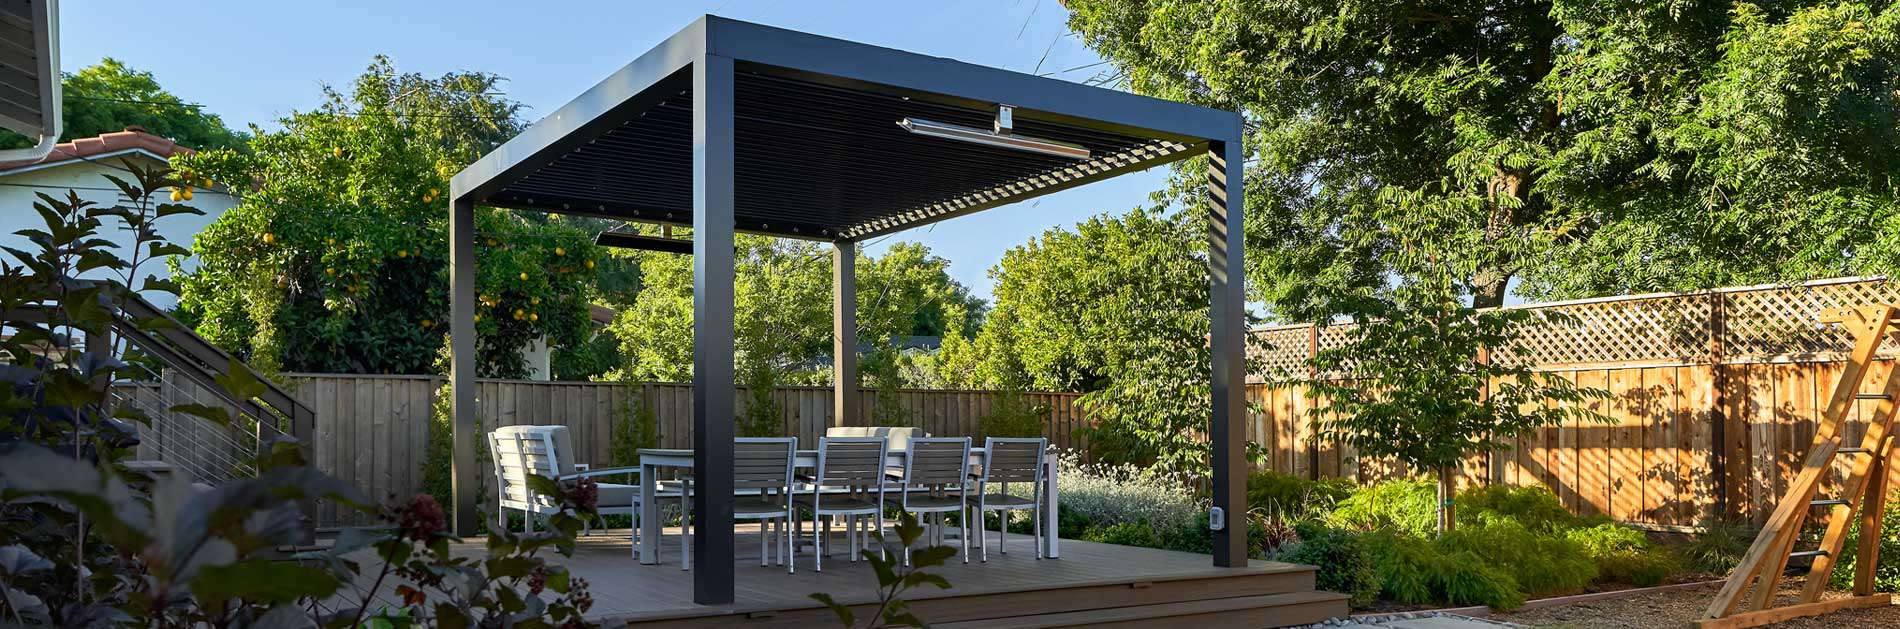 Backyard pergola-covered patio with seating